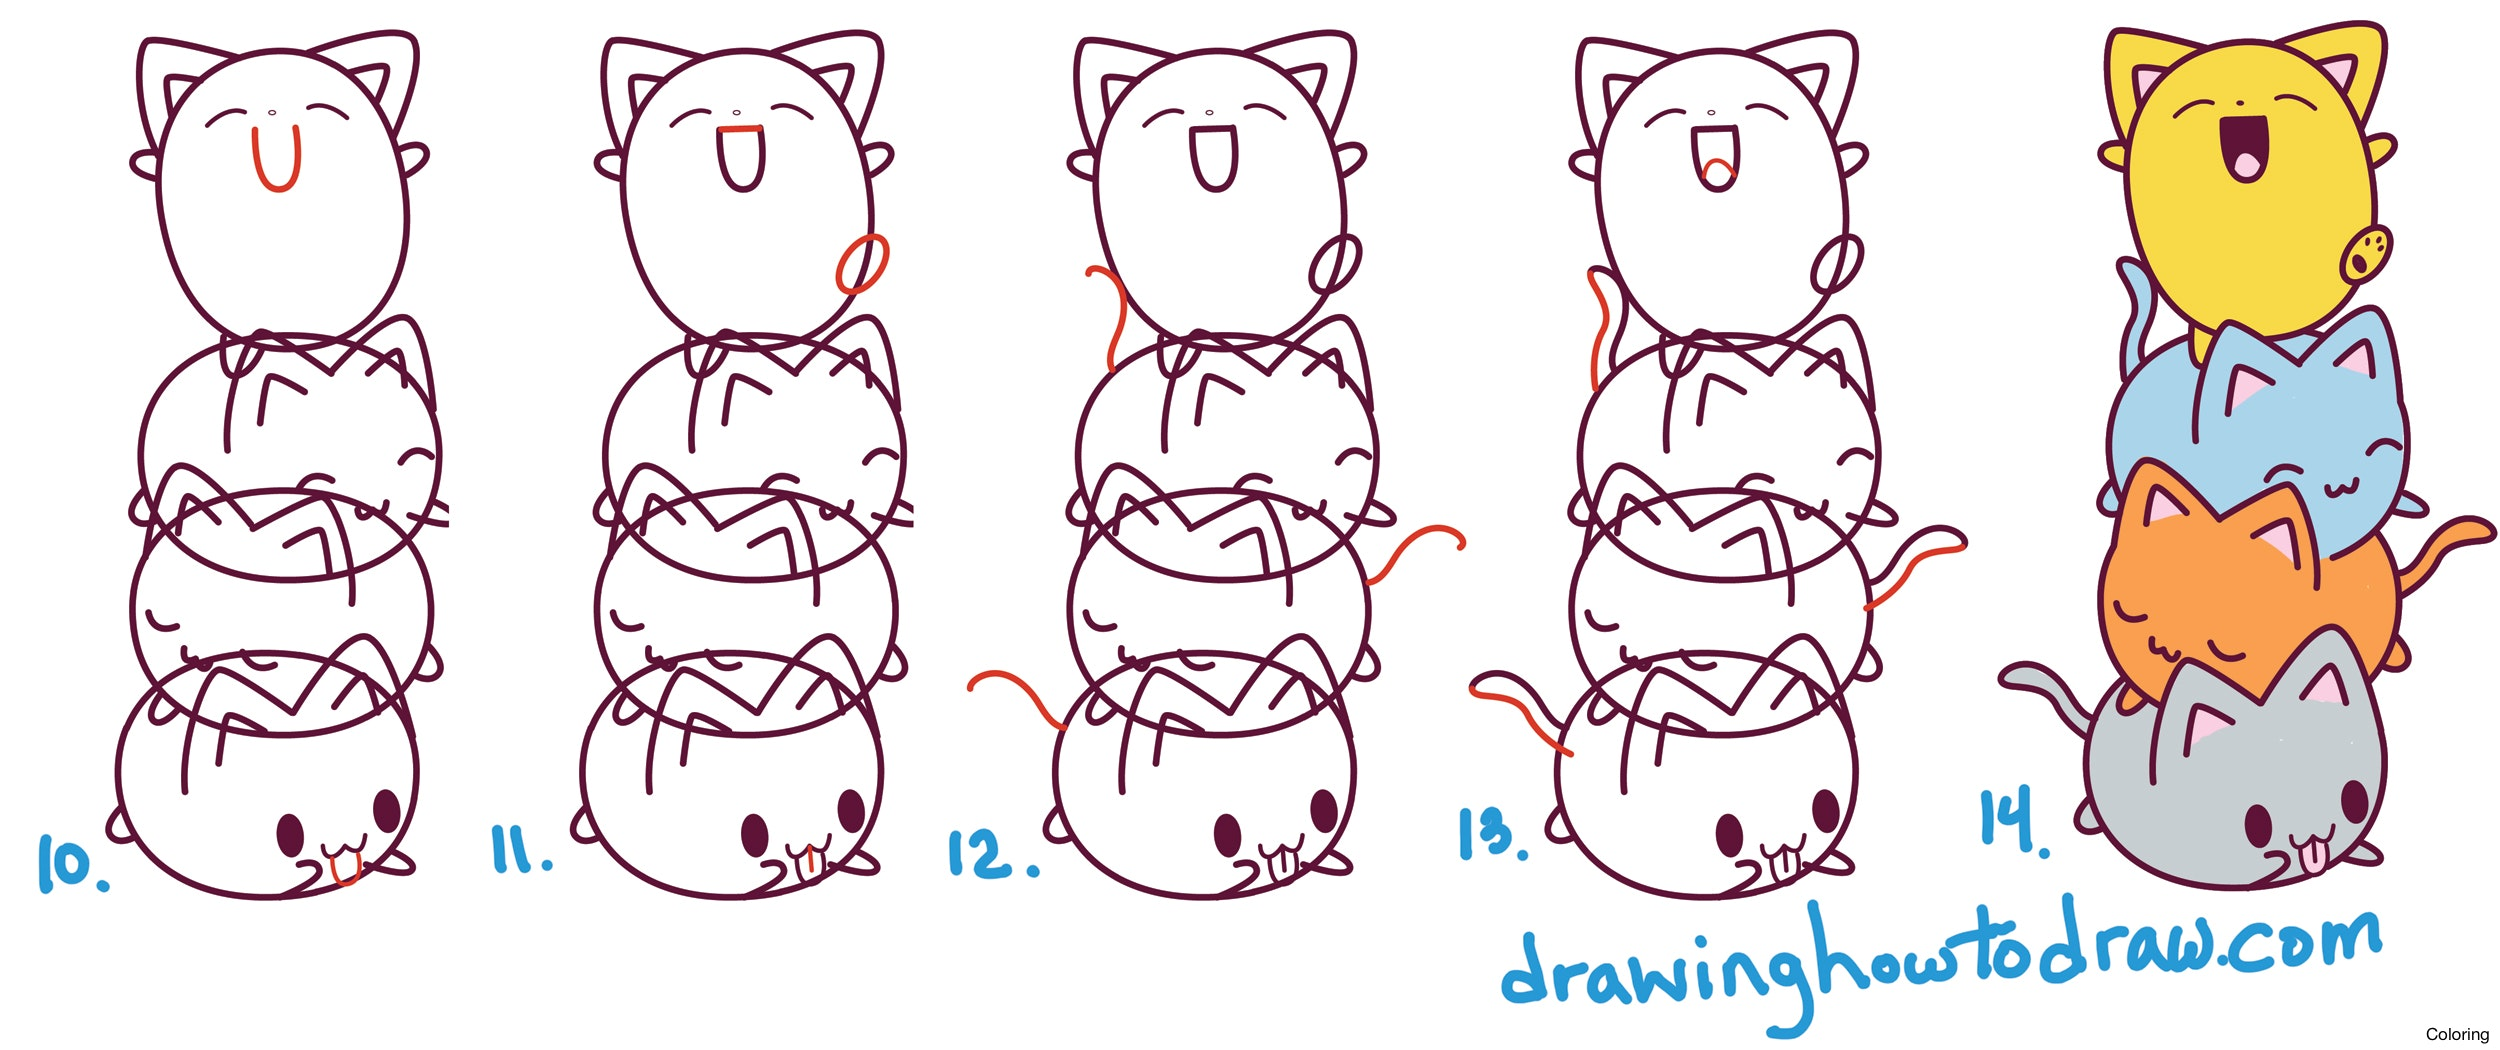 Cats step by step drawing at getdrawings free for personal use 2500x1050 how to draw cute cartoon kawaii cat from letters easy step by altavistaventures Gallery